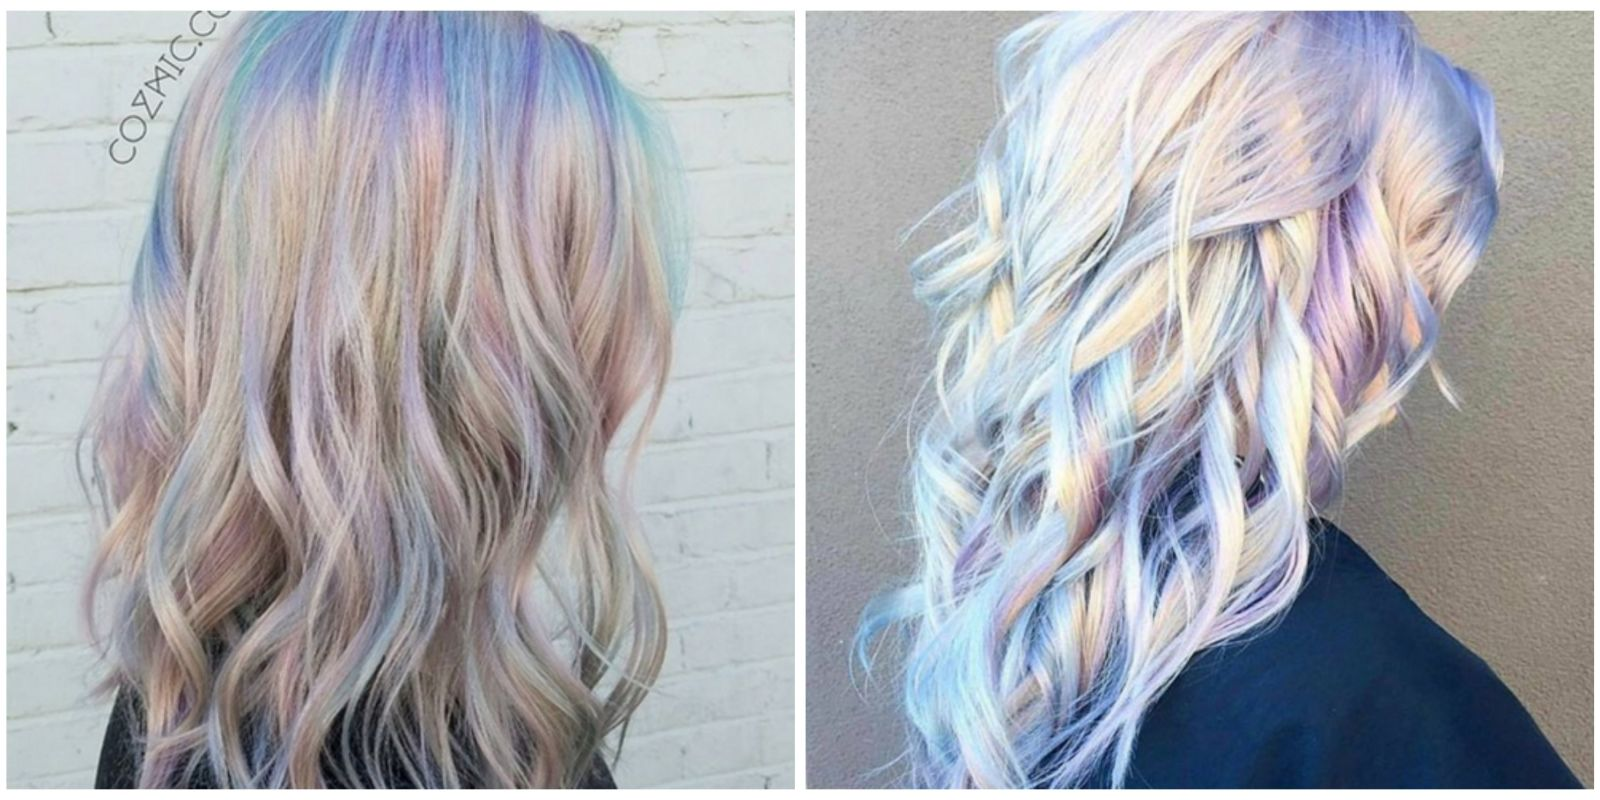 Hair Color Styles: Holographic Hair Is The Latest 2017 Hair Trend